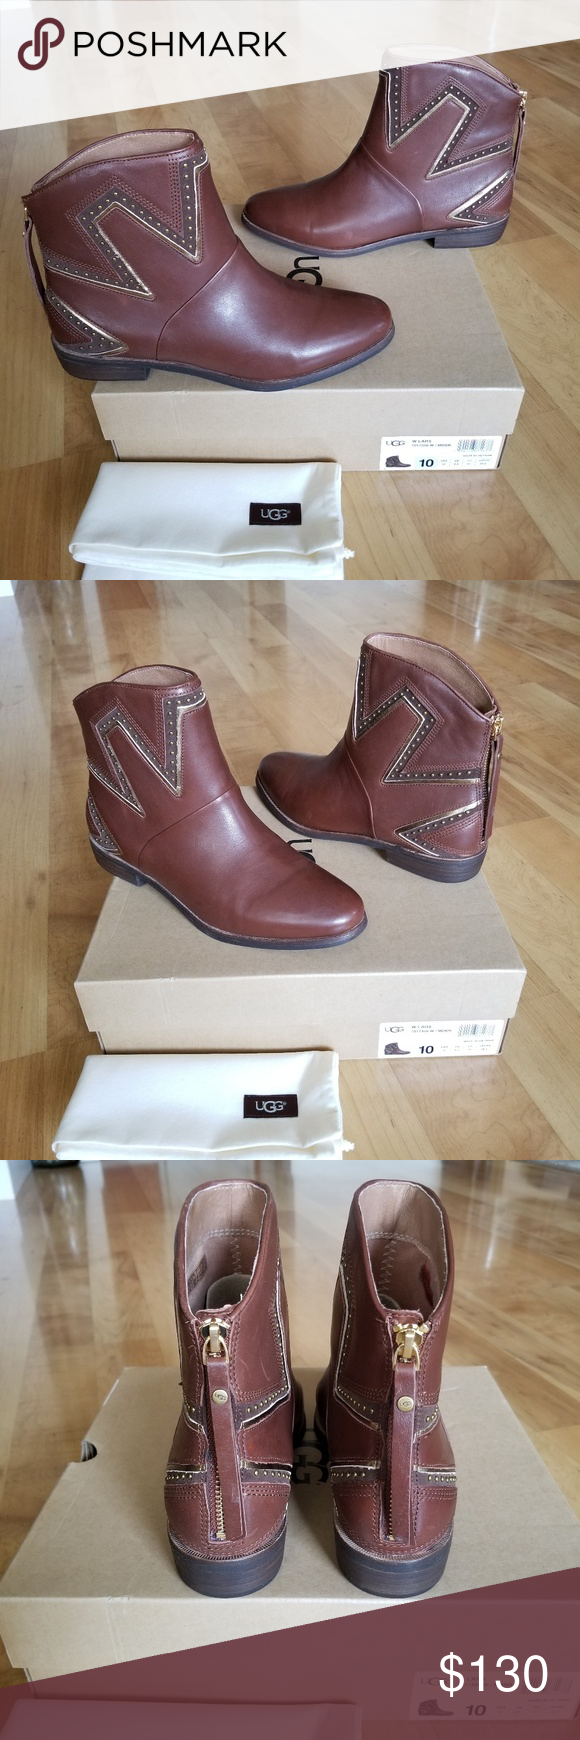 3c061c74086 UGG Shoes   Ugg Boots   Color: Brown   Size: 10   My Posh Picks ...